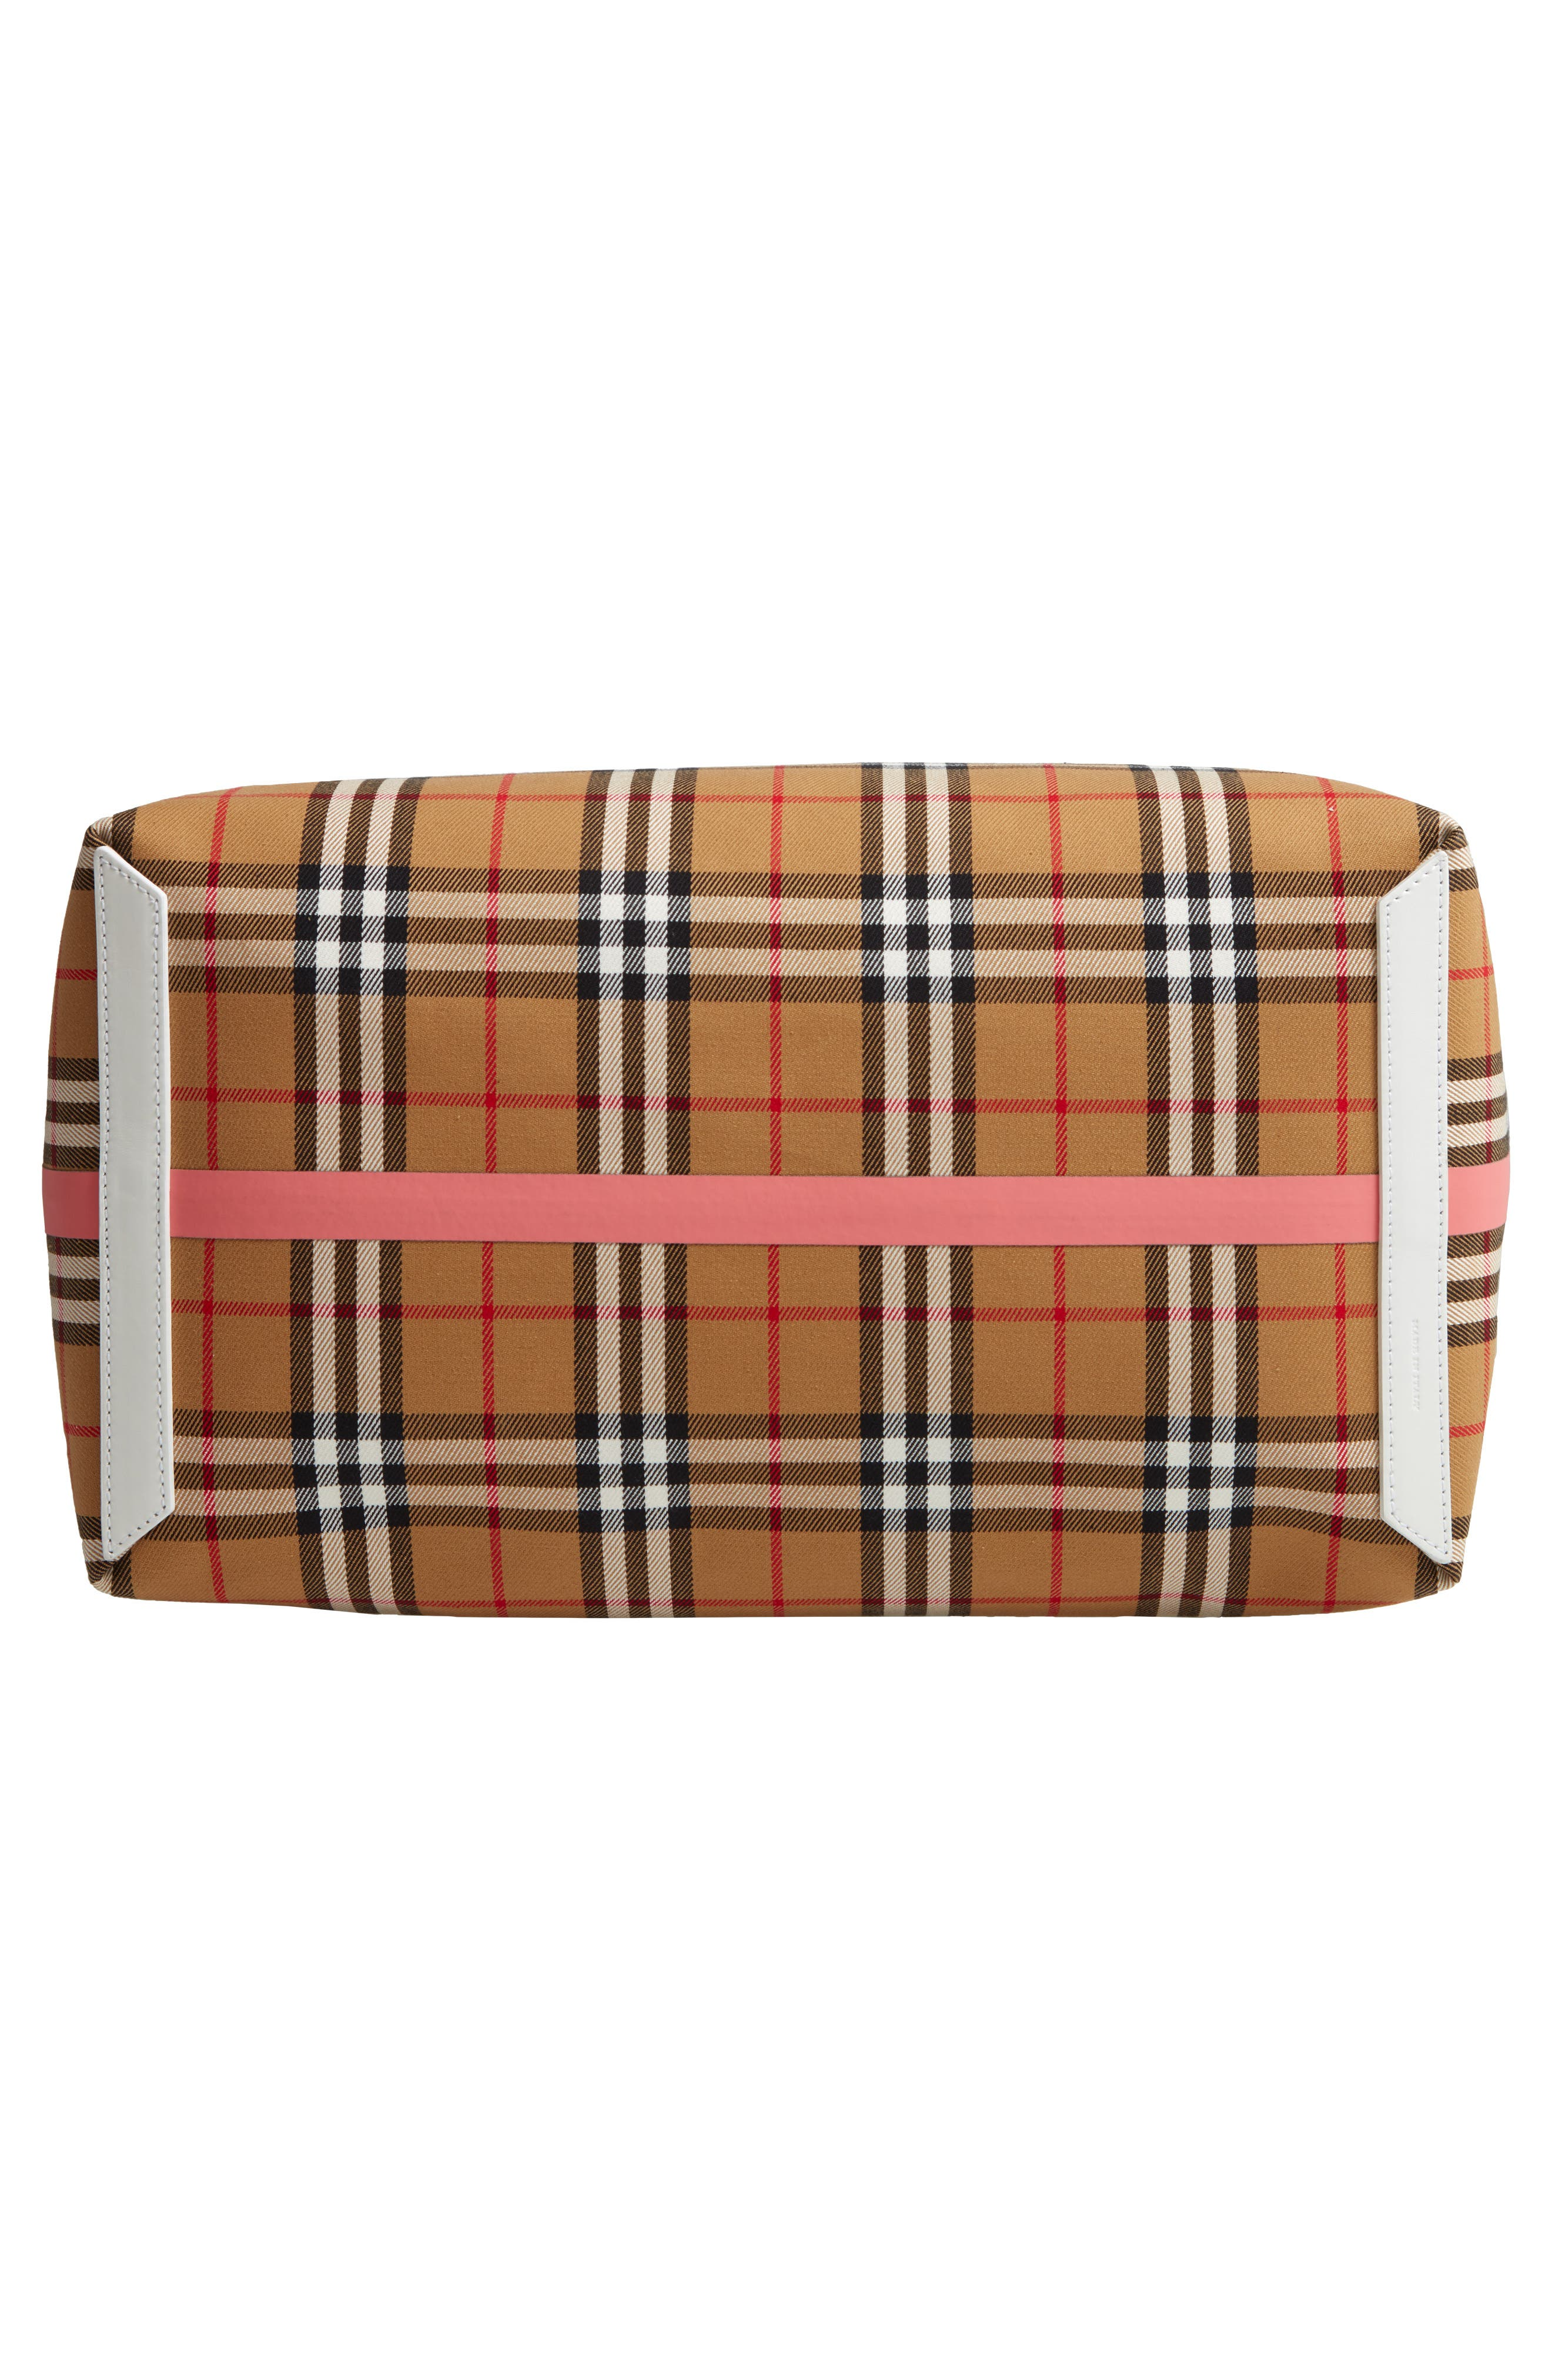 Giant Check Reversible Tote,                             Alternate thumbnail 7, color,                             BEIGE/ PINK/ CHALK WHITE